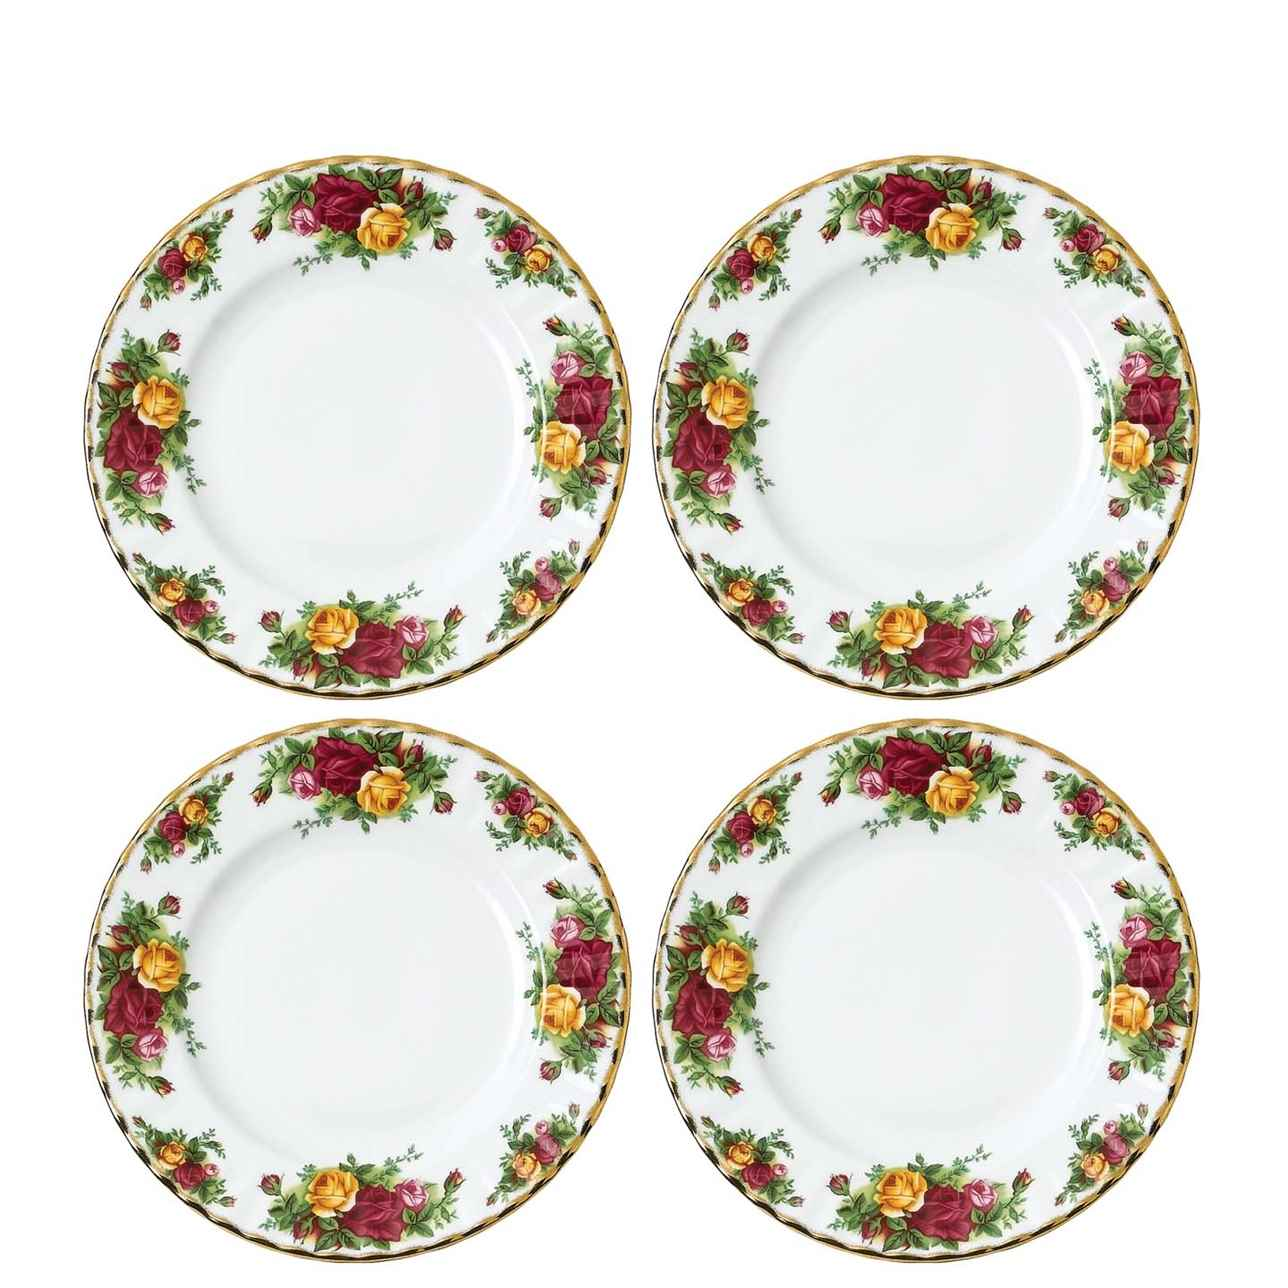 Royal Albert Old Country Roses Side Plate 20cm, Set of 4